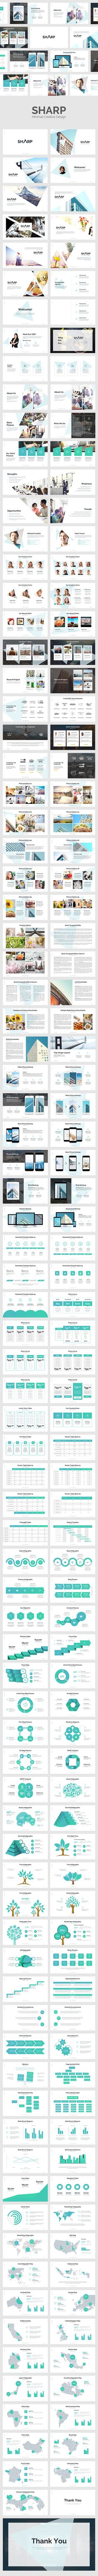 SHARP - Creative Design (PowerPoint Templates) More